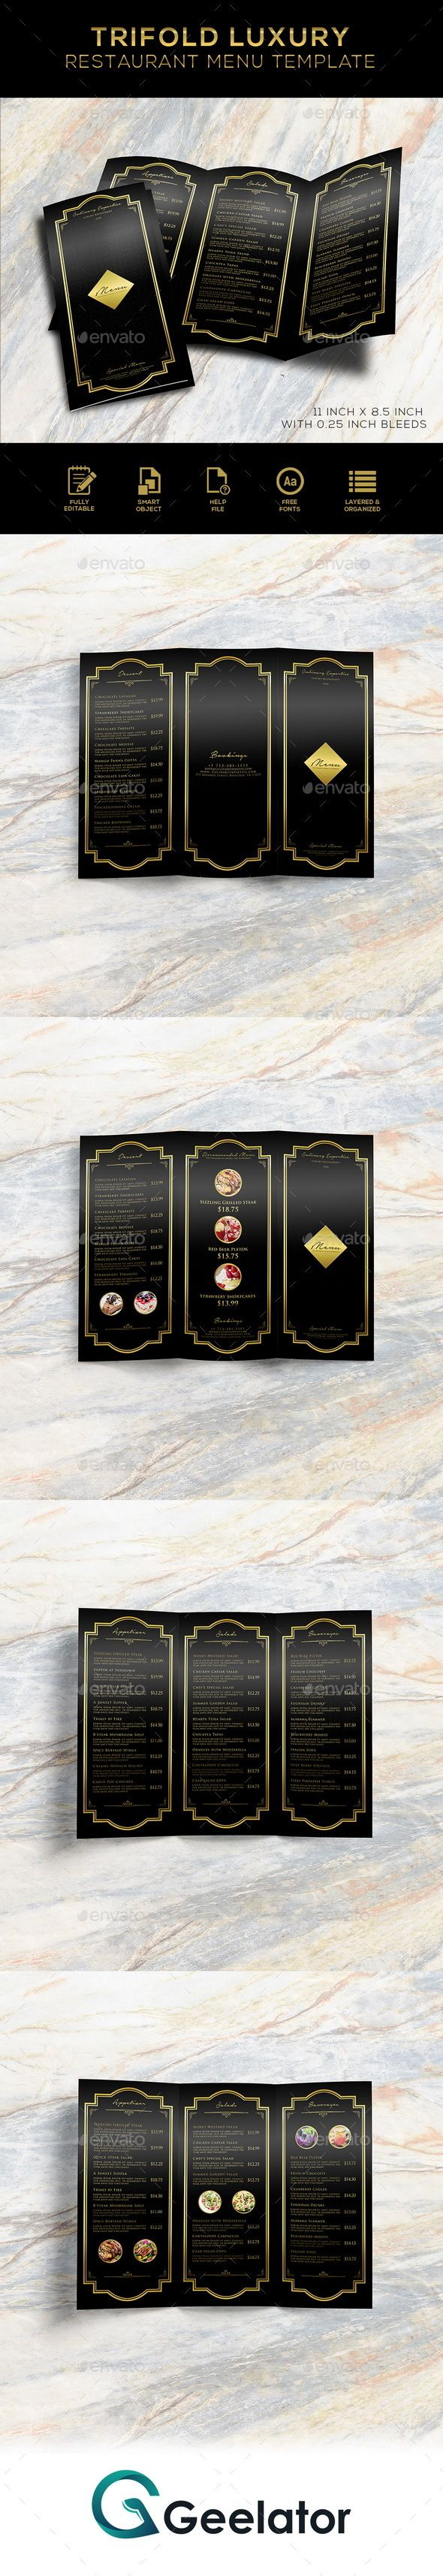 Tri-Fold Luxury Restaurant Menu Template - #bar #black #cafe #cafemenu #cafe #trifoldmenu #coffeshop #creative #deliciousmenu #elegant #fastfood #fastfoodmenu #food #foodmenu #luxury #luxurydesign #luxurymenu #menu #menudesign #menutemplates #printtemplate #promotion #restaurant #restaurantmenu #restauranttrifoldmenu #streetfood #streetfoodmenu #trifold #trifoldmenu #streetmenu